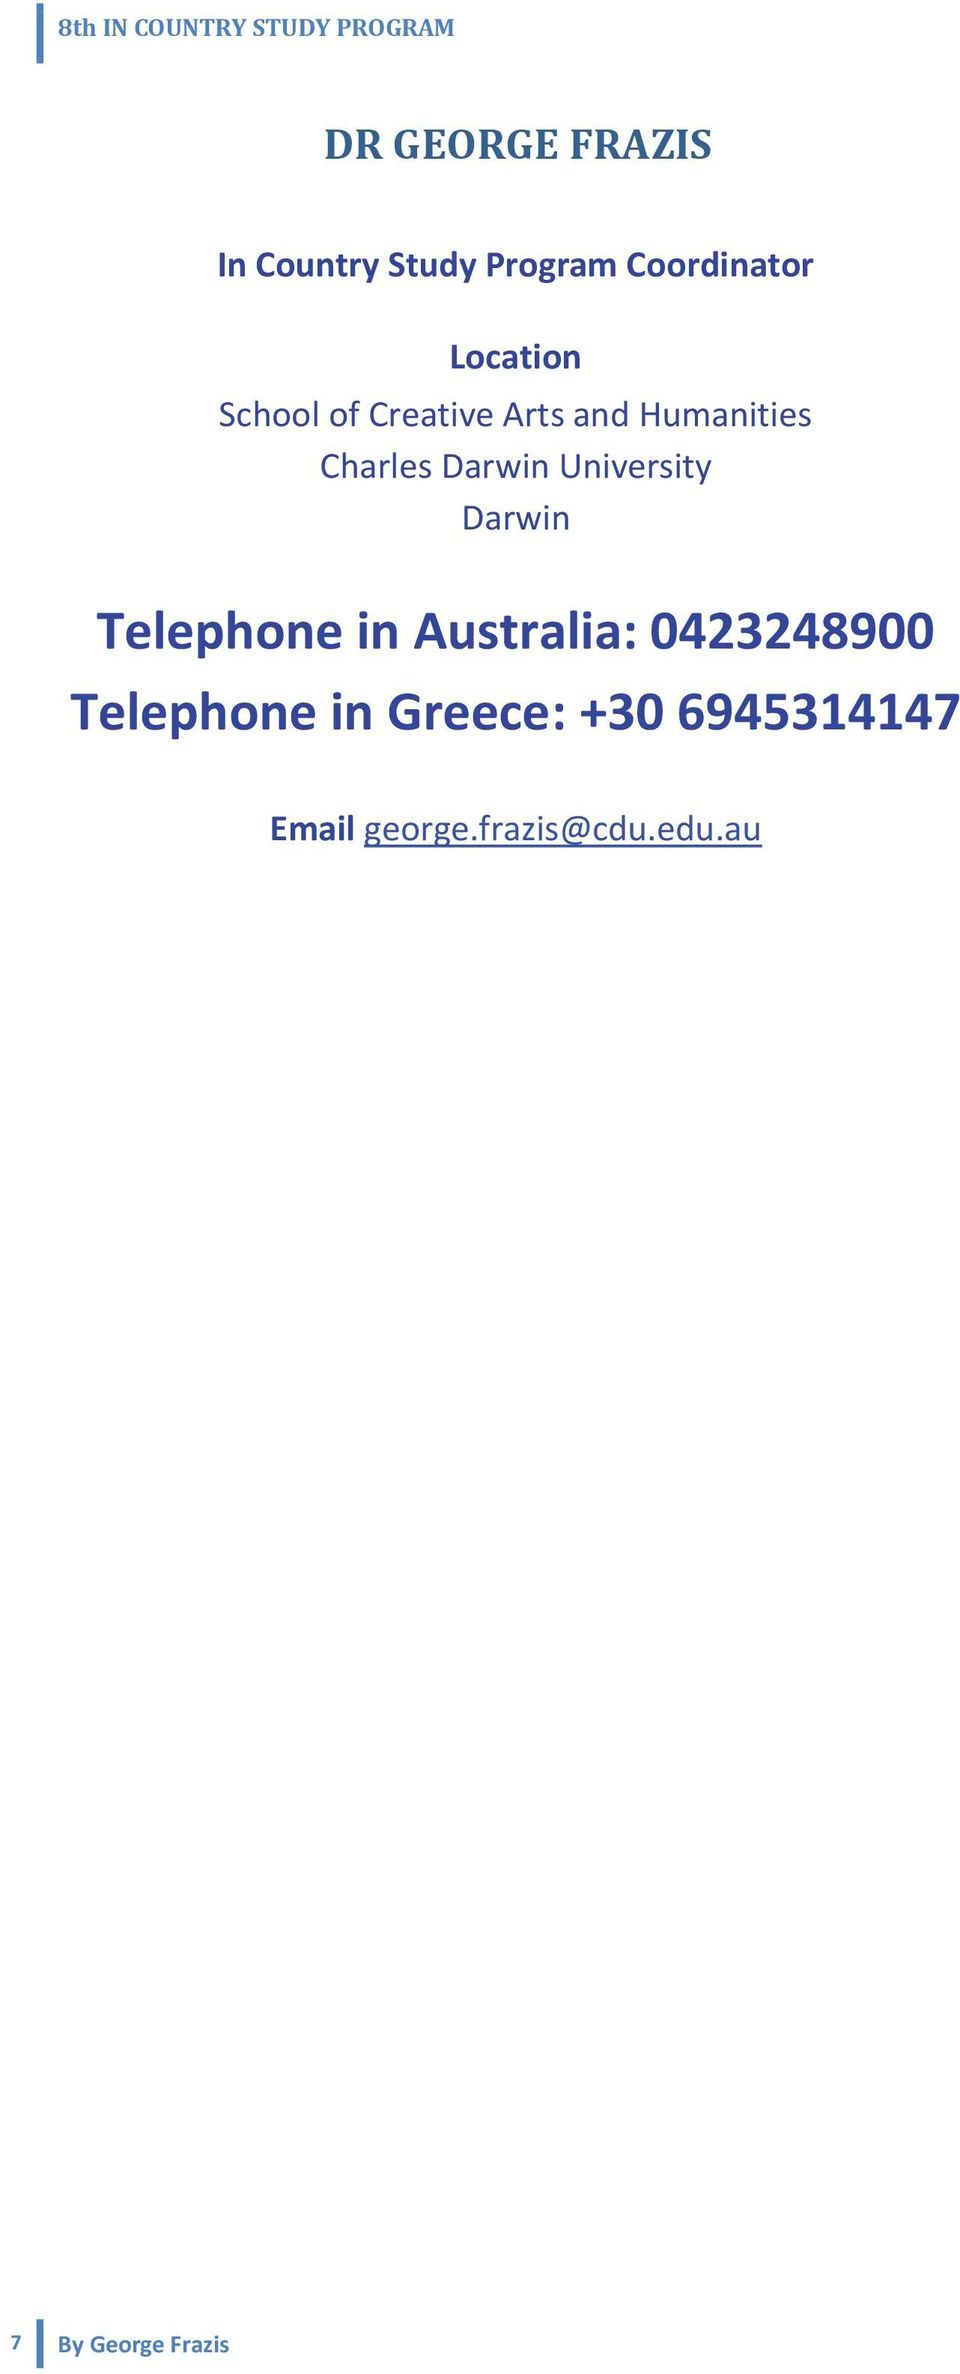 Telephone +30 6945314147 in Greece: +30 6945314147 Email george.frazis@cdu.edu.au Email george.frazis@cdu.edu.au Maria Papaskouli Sales & Marketing Manager Maria Papaskouli Sales & Marketing Manager E-mail mpapaskouli@yannatours.